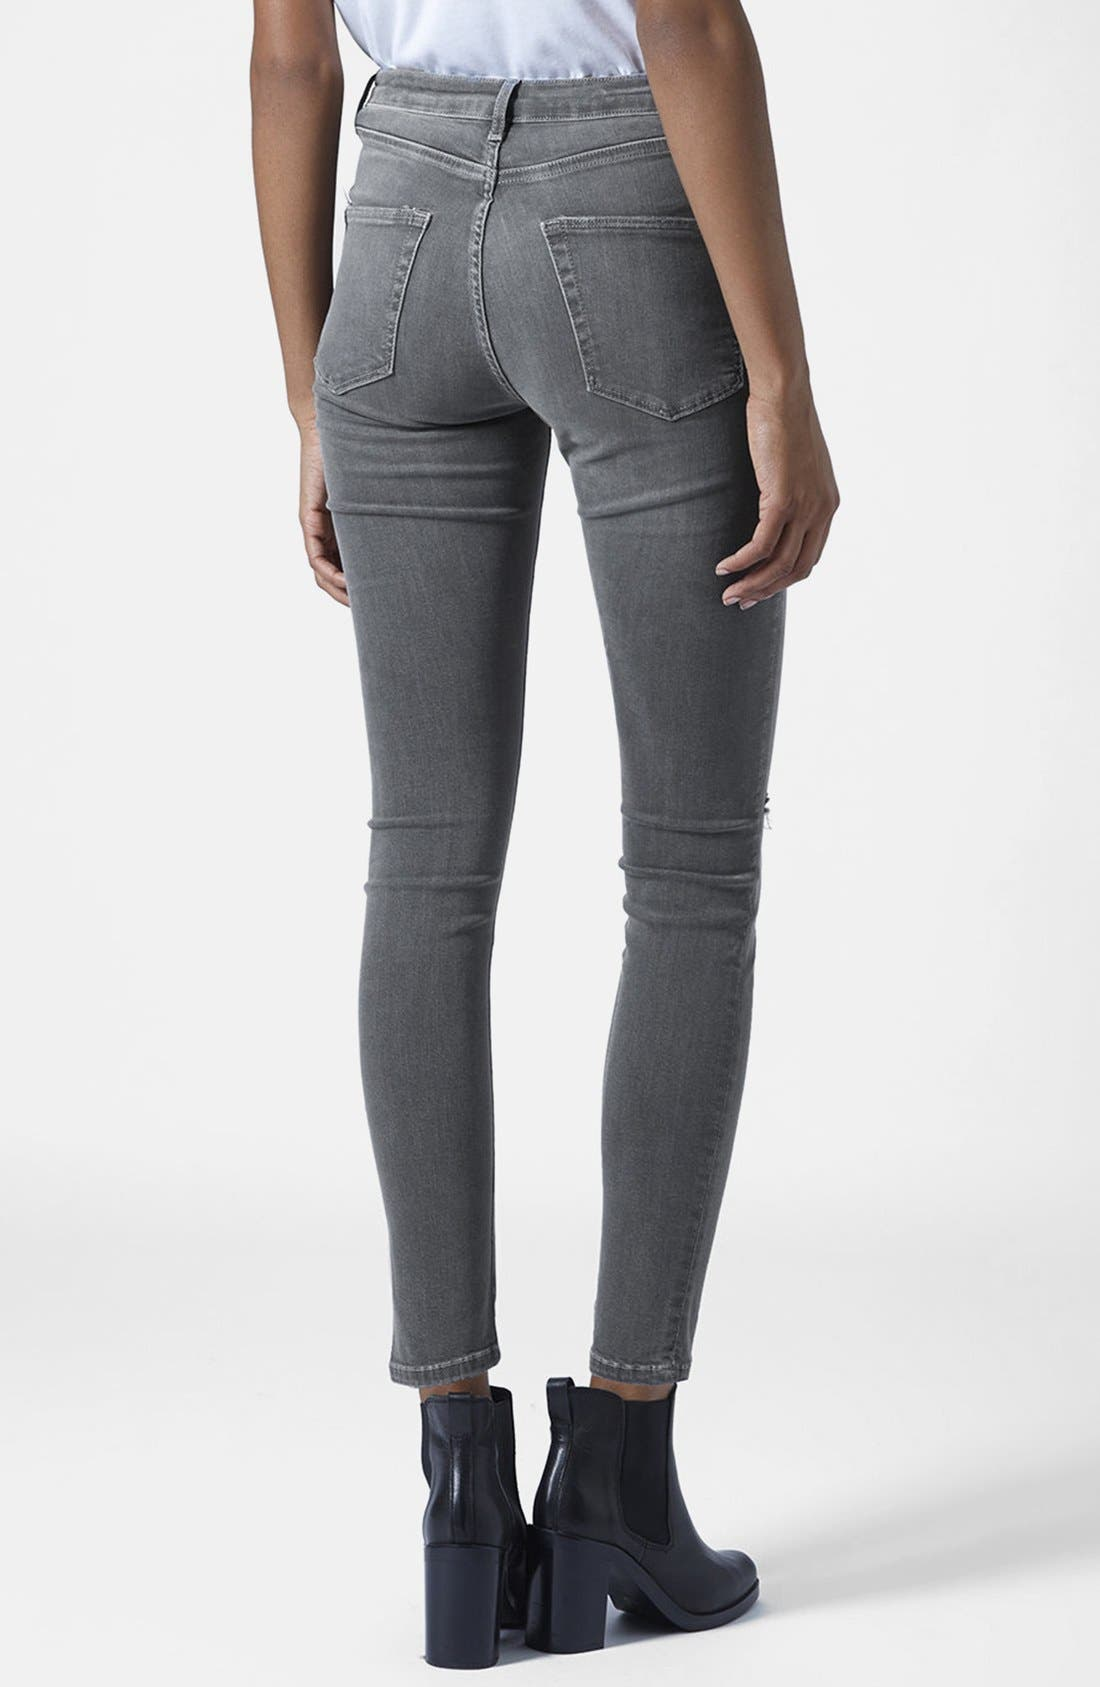 TOPSHOP, Moto 'Jamie' Ripped Skinny Jeans, Alternate thumbnail 2, color, 020